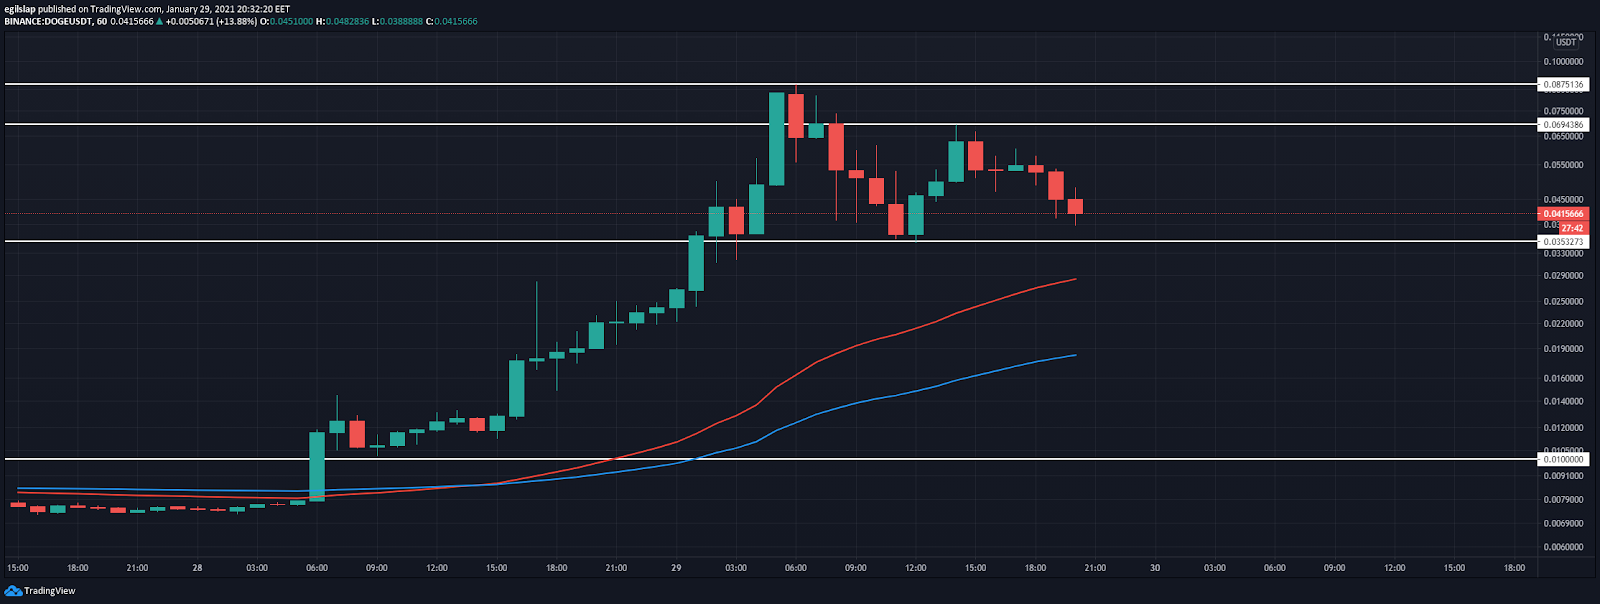 Dogecoin Price Prediction -  1-hour price chart